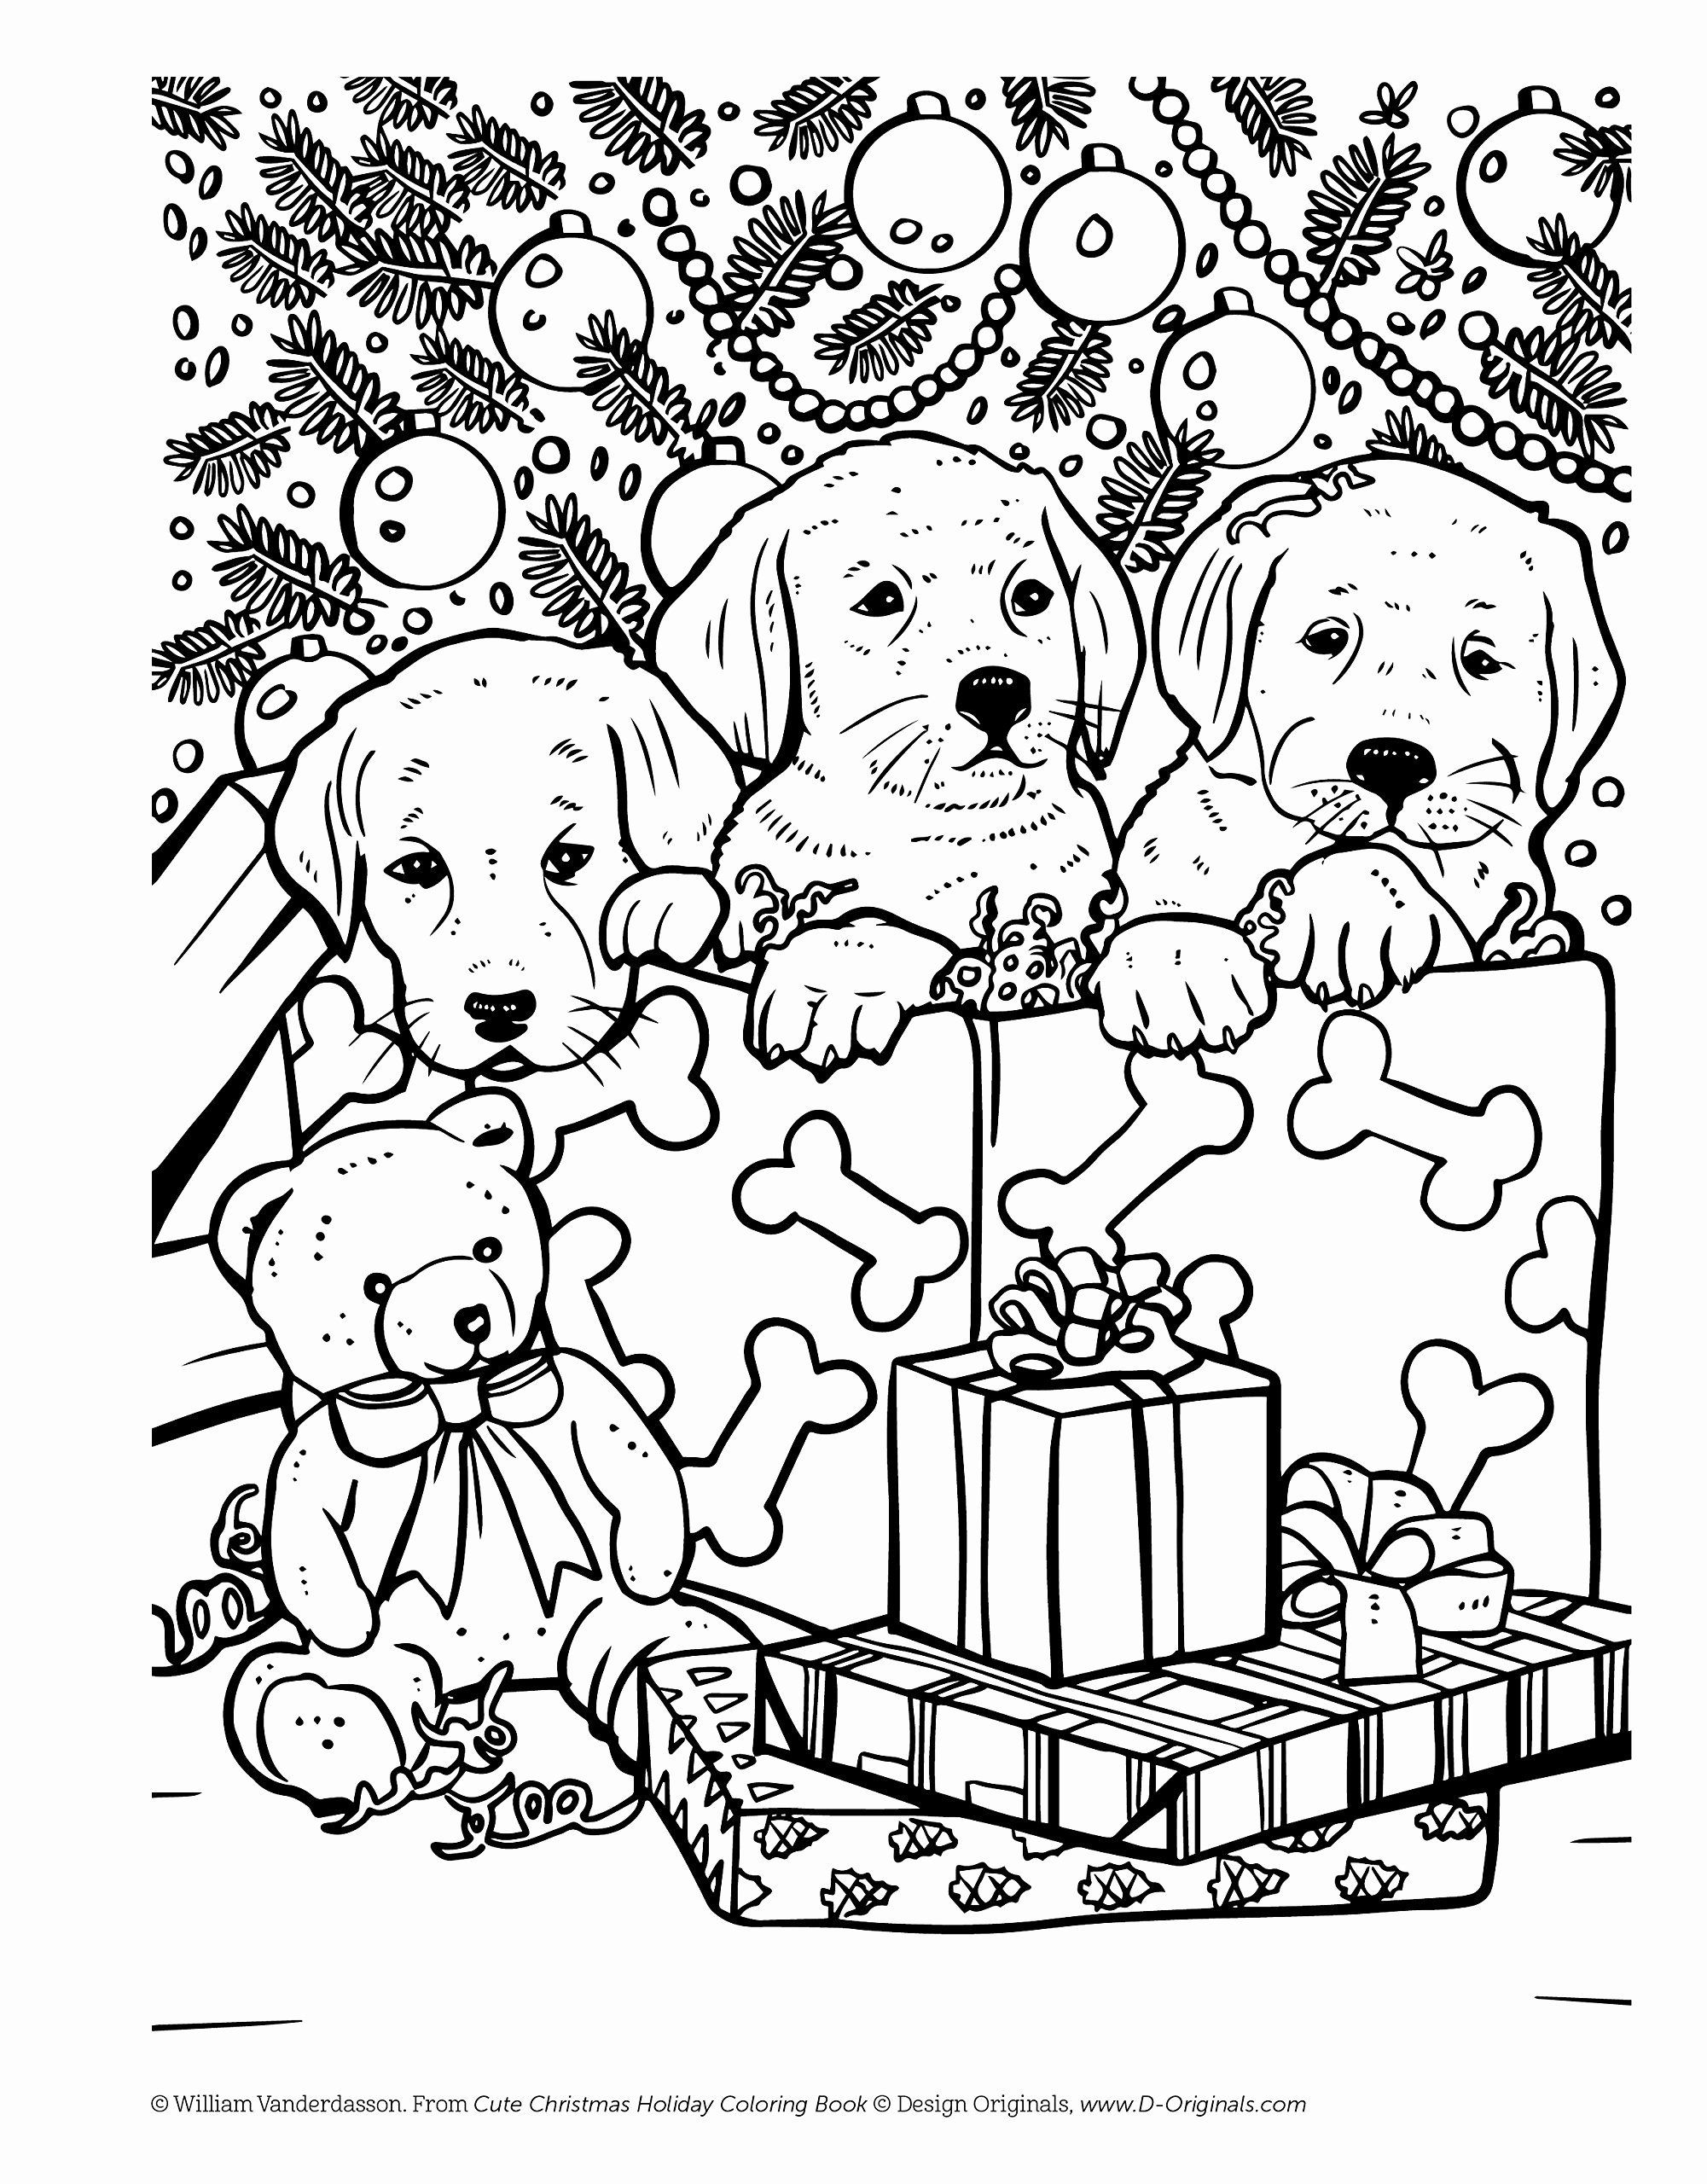 Kawaii Christmas Coloring Pages Unique Cute Christmas Holiday Coloring Book For Animal Love In 2020 Puppy Coloring Pages Holiday Coloring Book Christmas Coloring Books